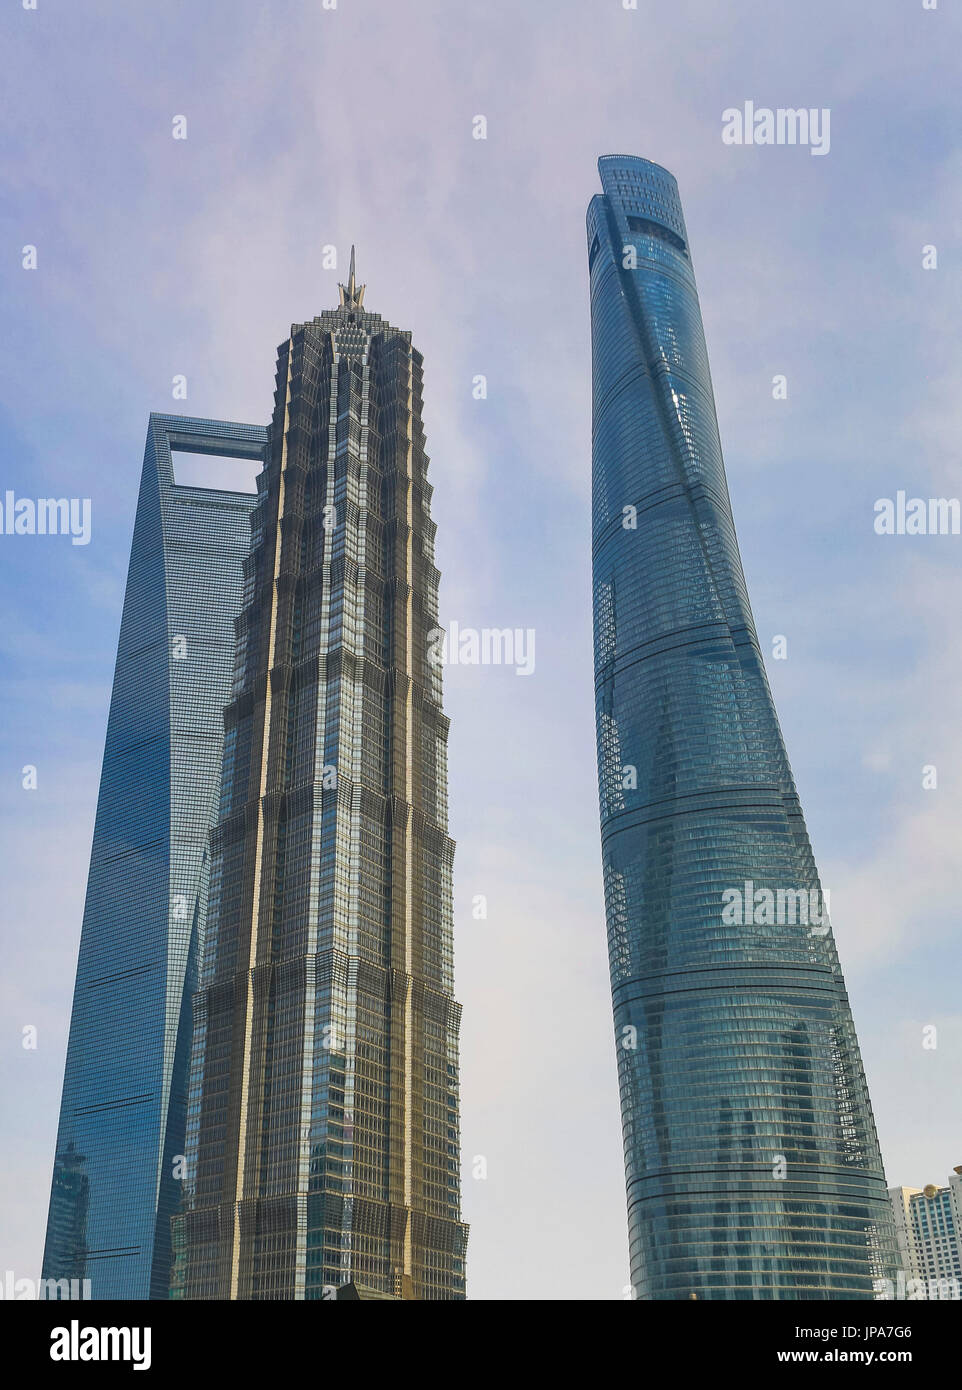 China, Shanghai City, Pudong District, Lujiazui, World Financial Center, Jinmao Building and Shanghai Tower - Stock Image